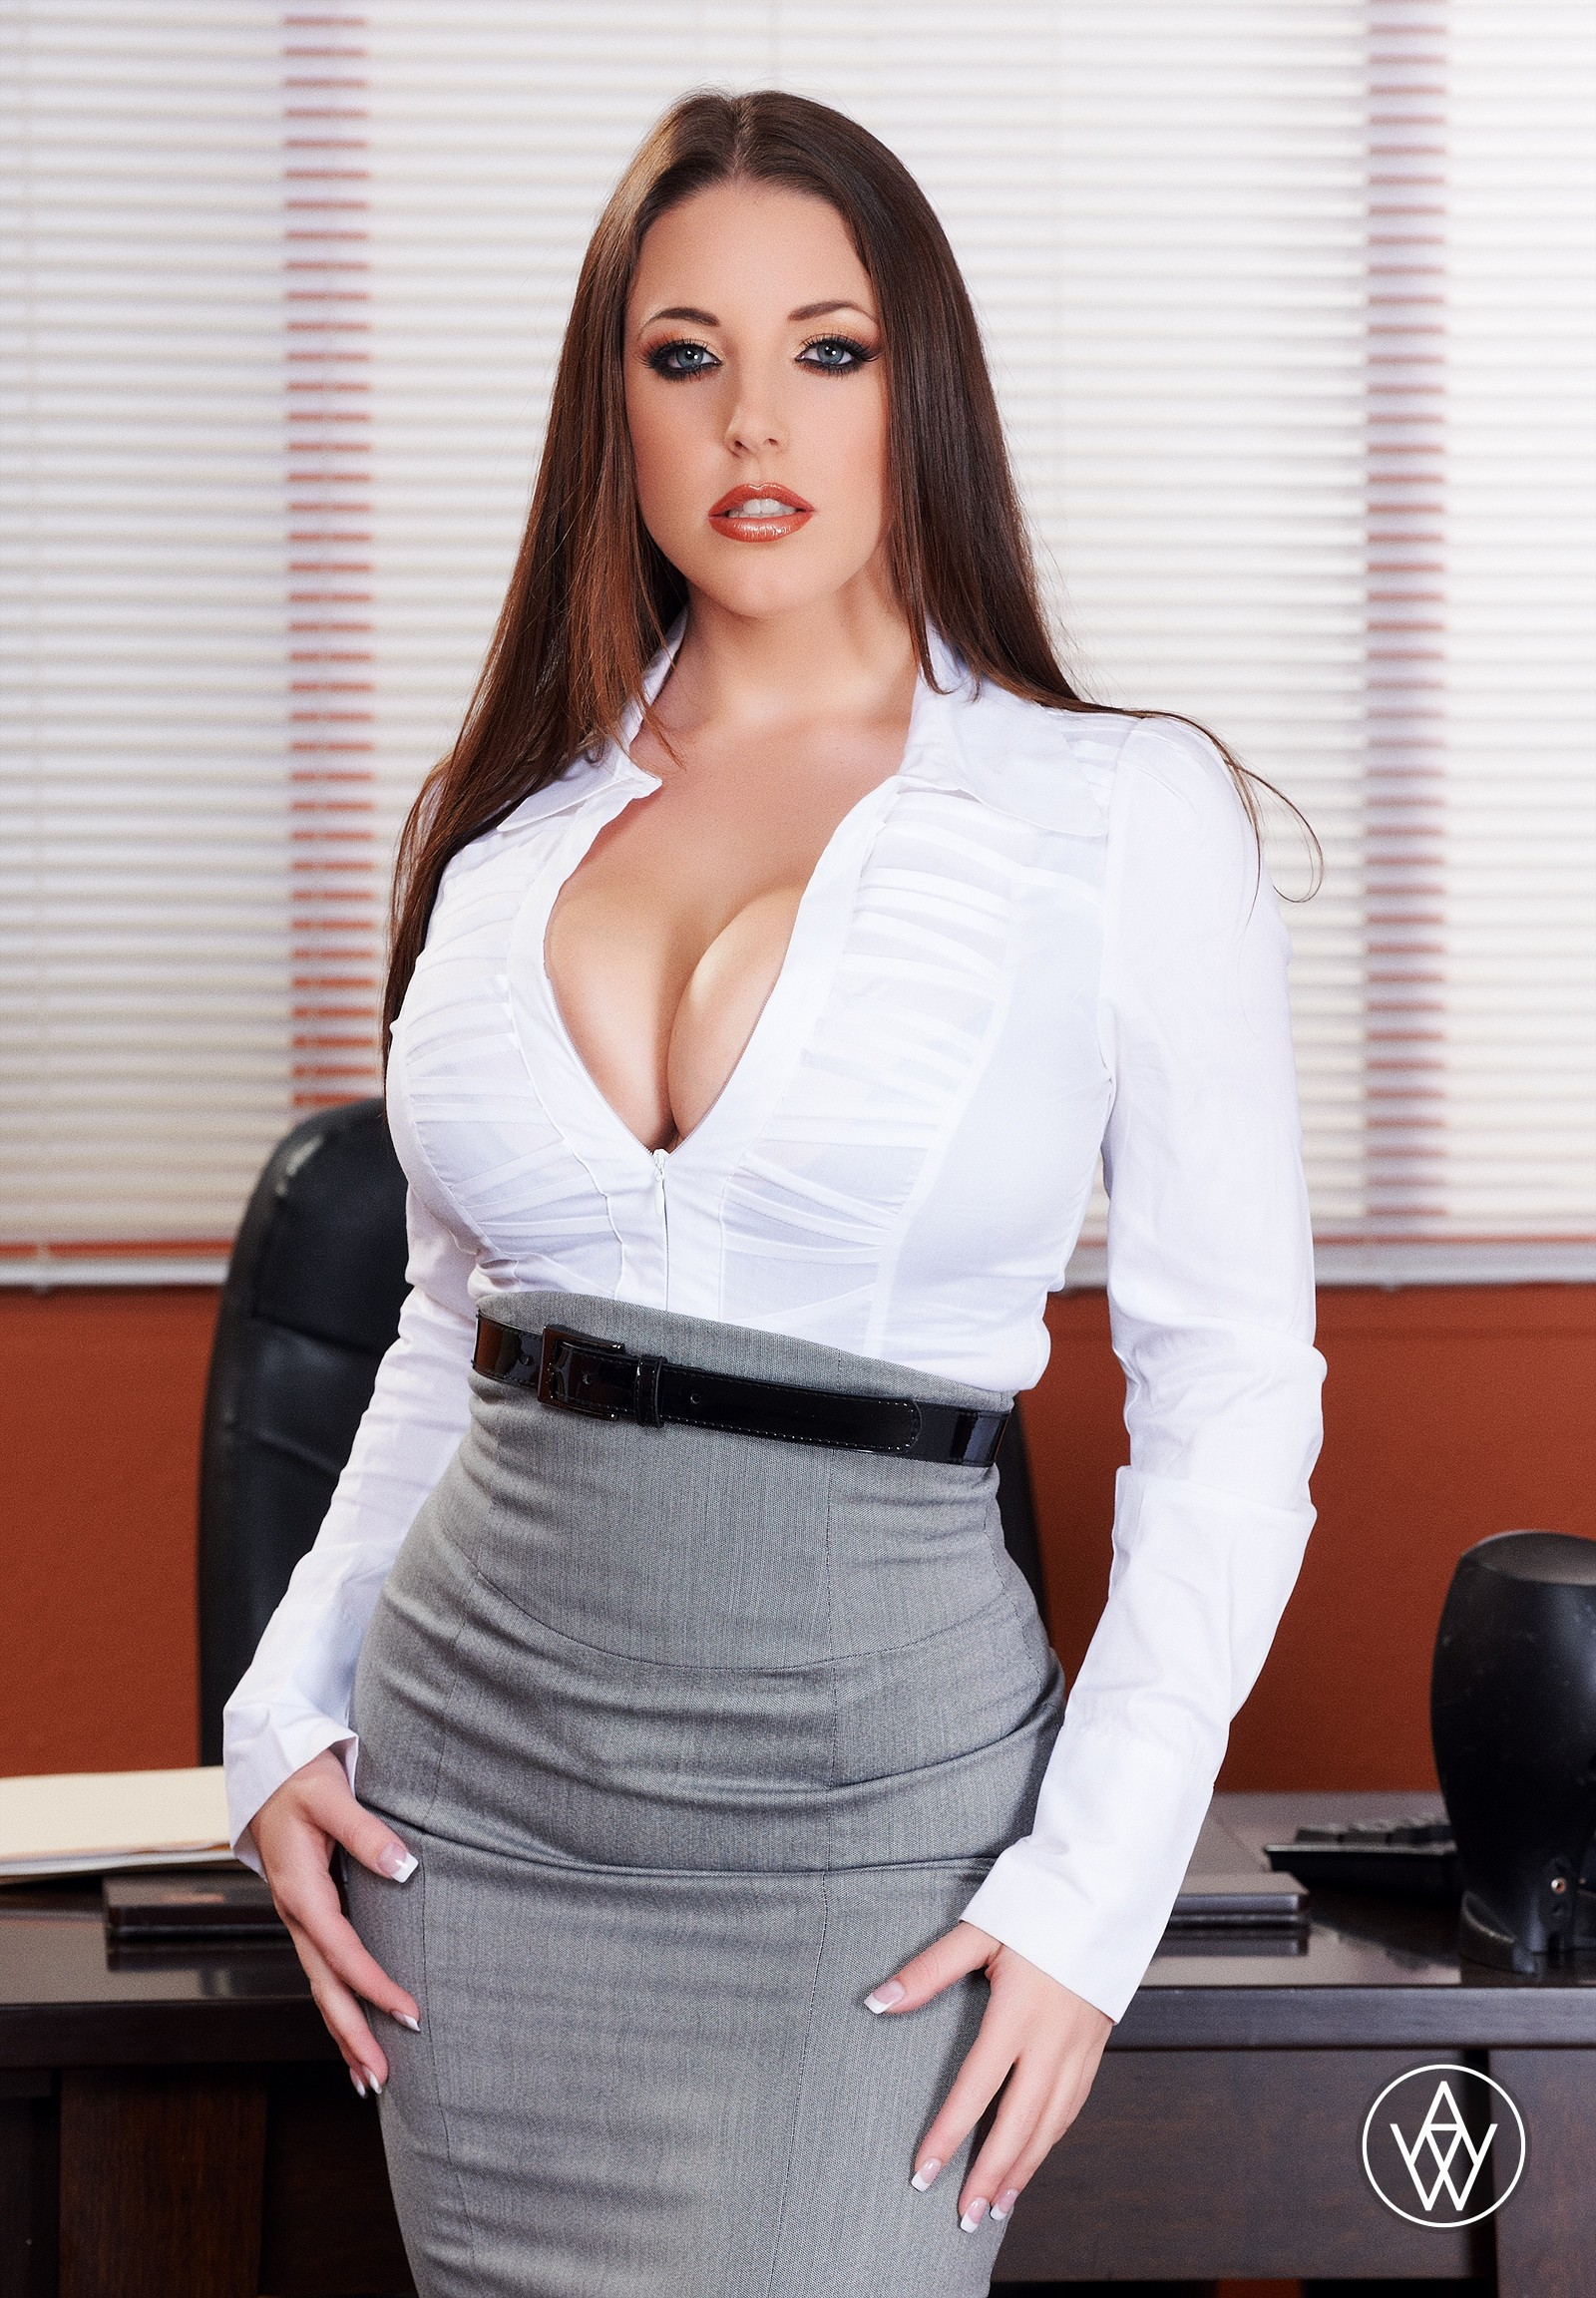 Angela White Iphone Wallpapers